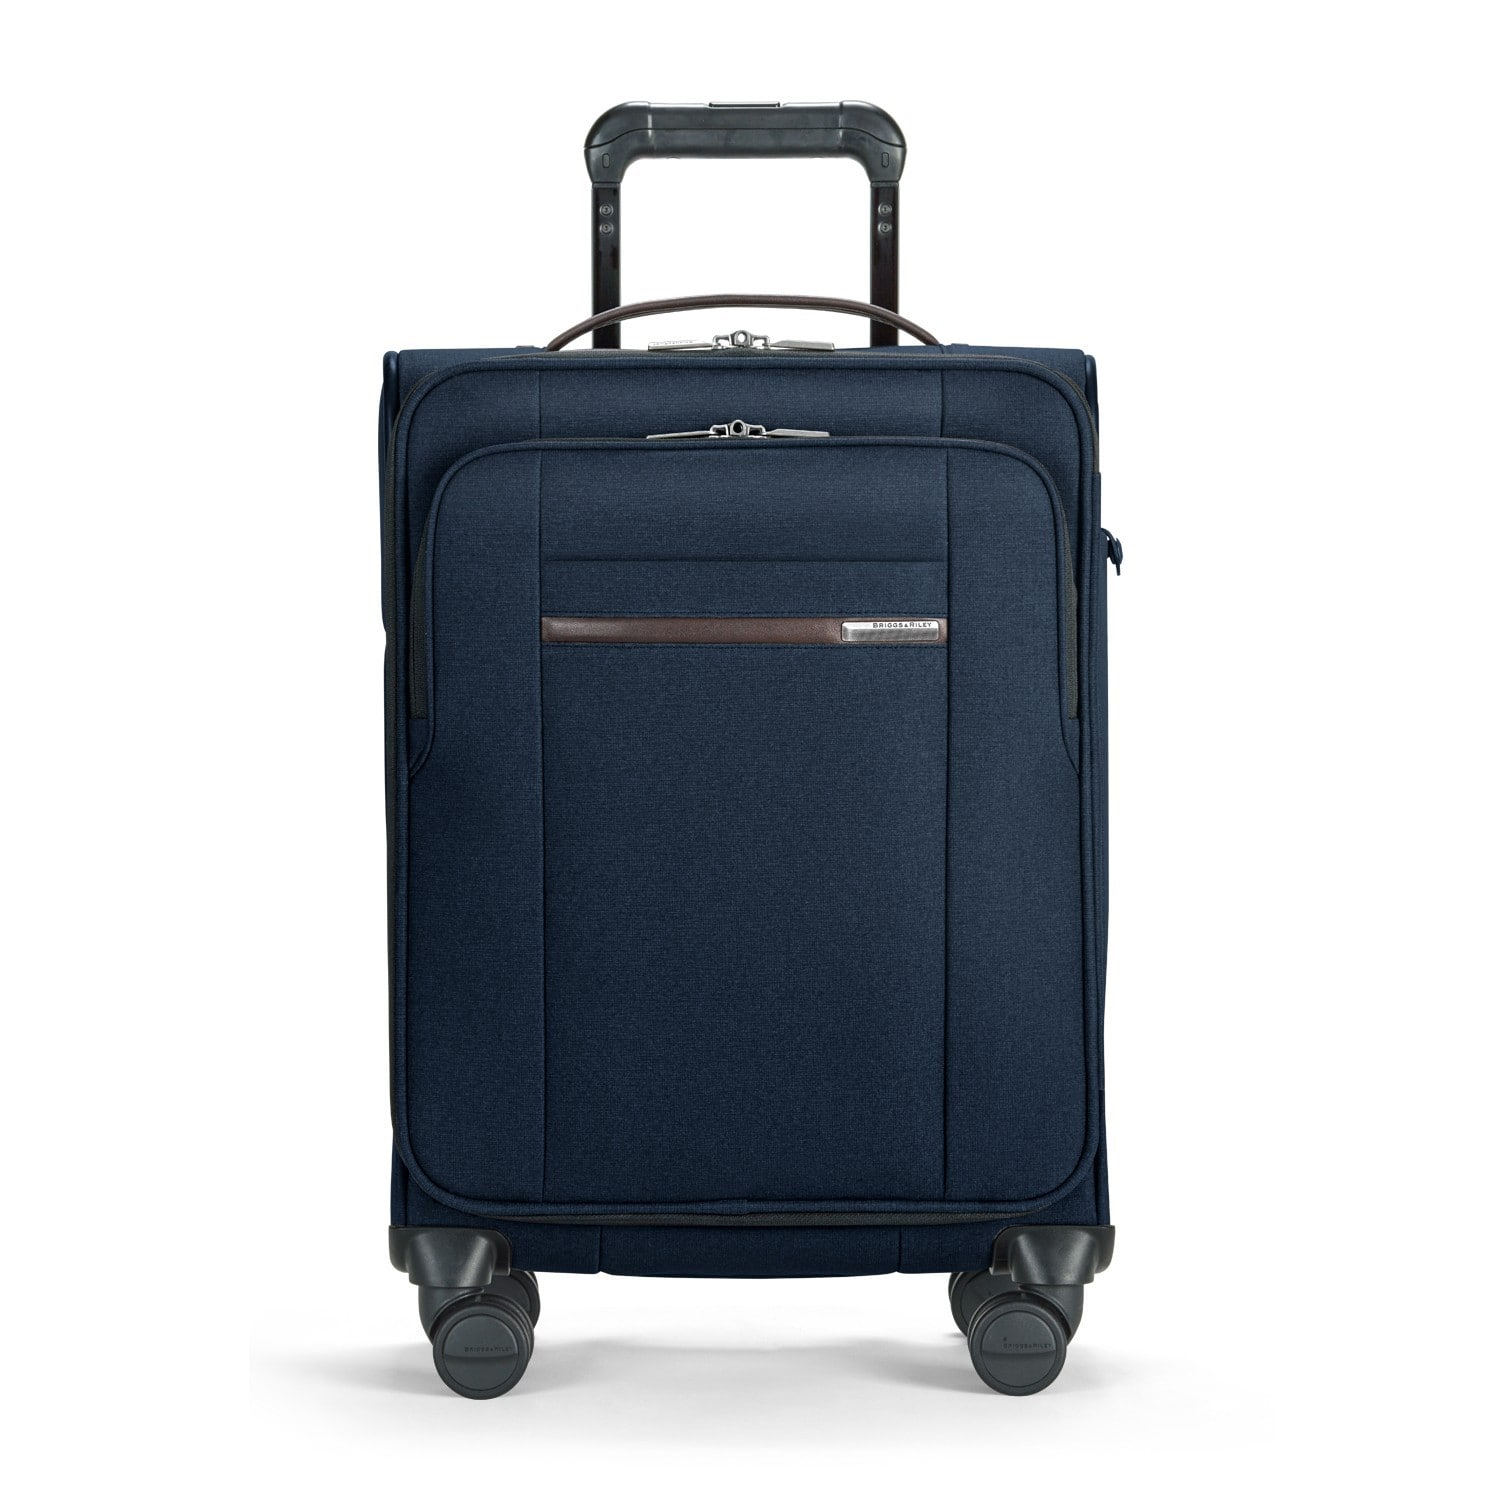 briggs international liquid oxygen phase diagram riley kinzie street 21 carry on spinner luggage expired